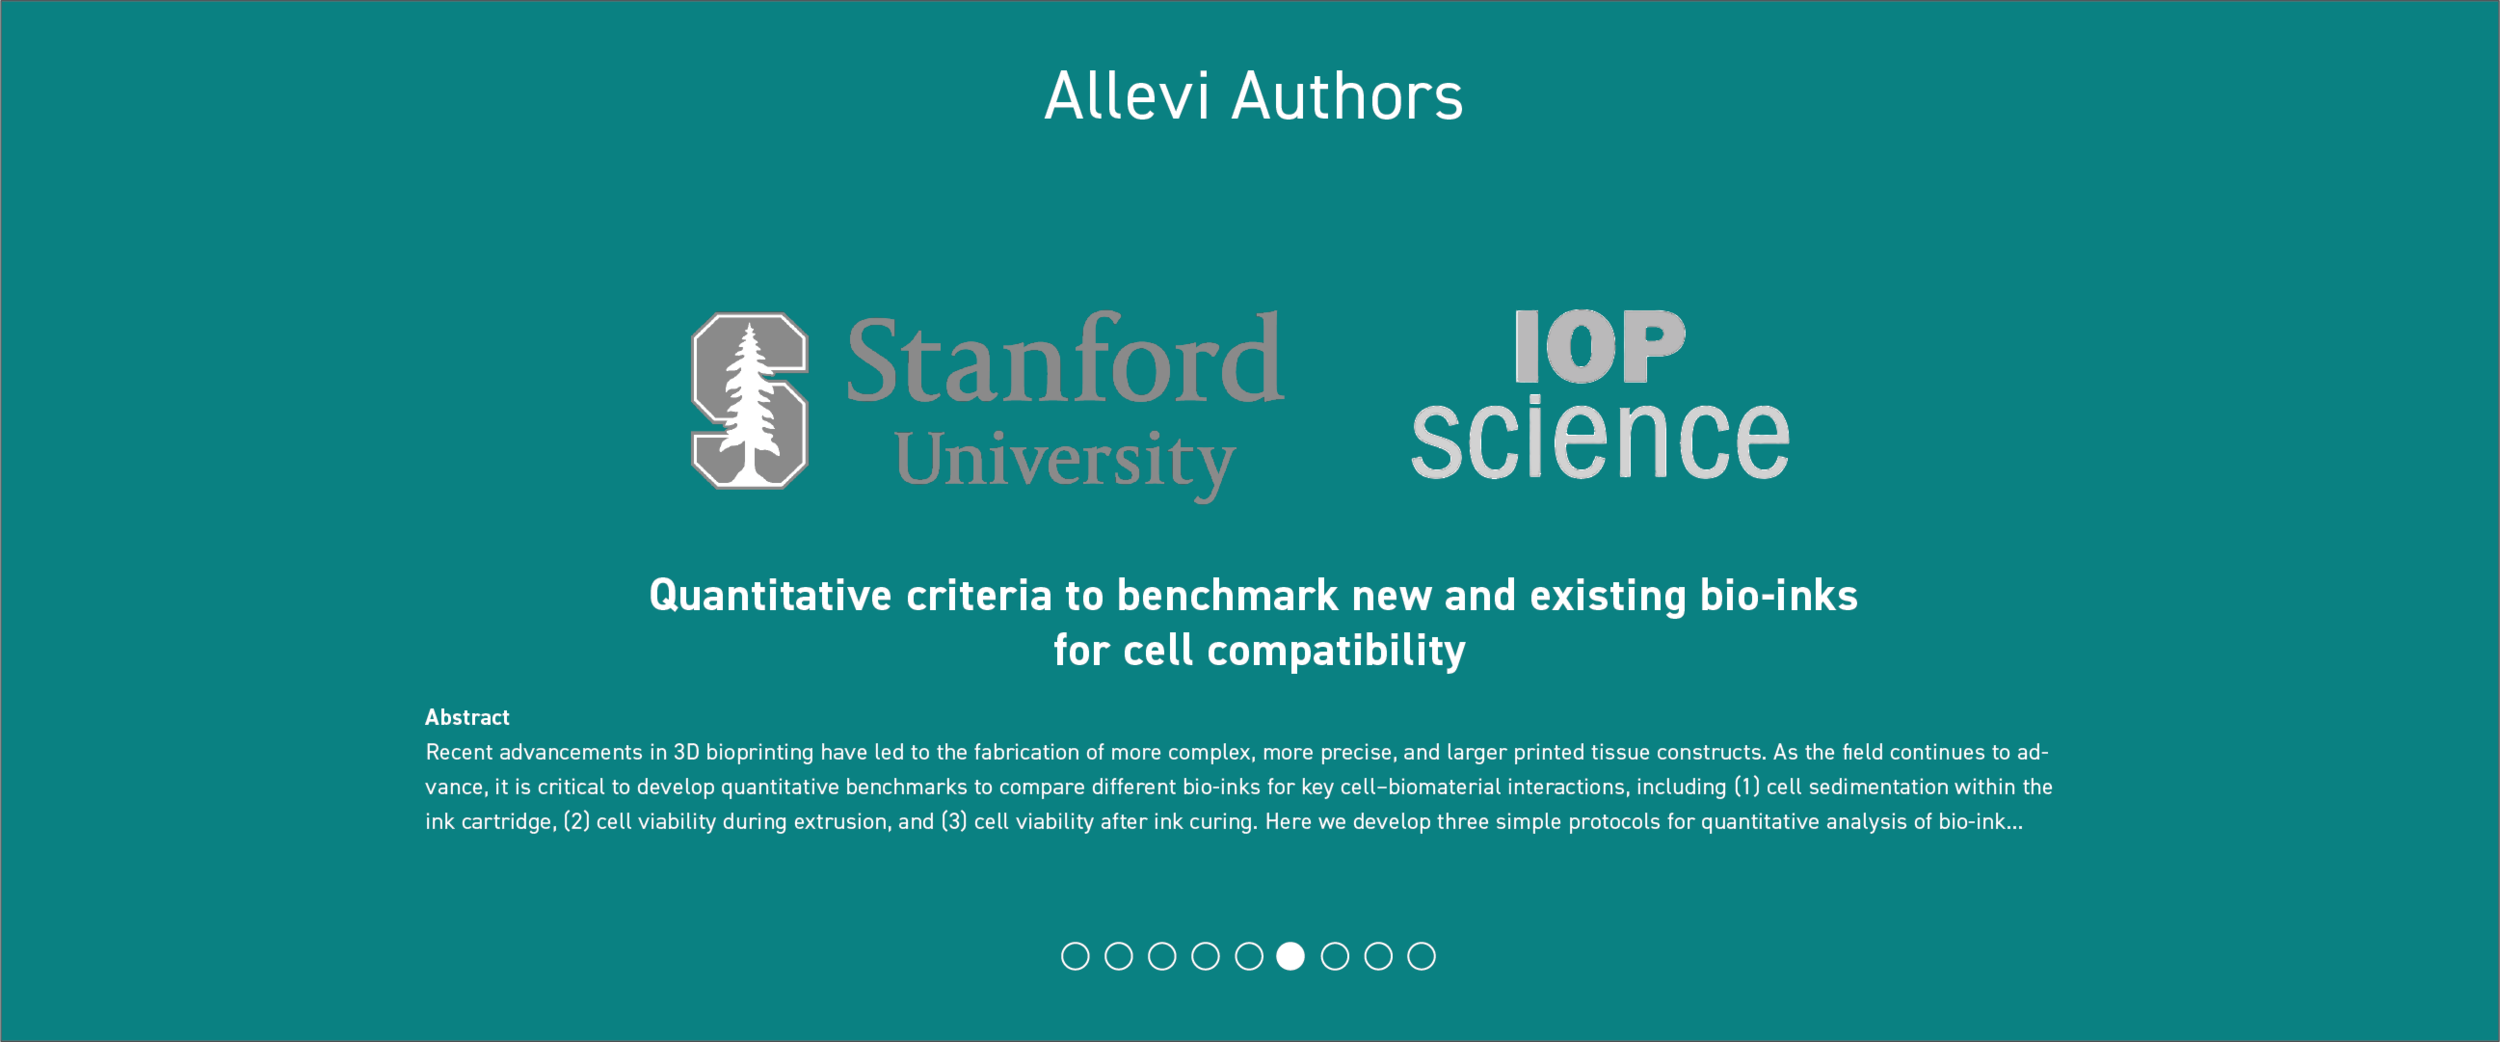 Allevi authors - STANFORD 2.png